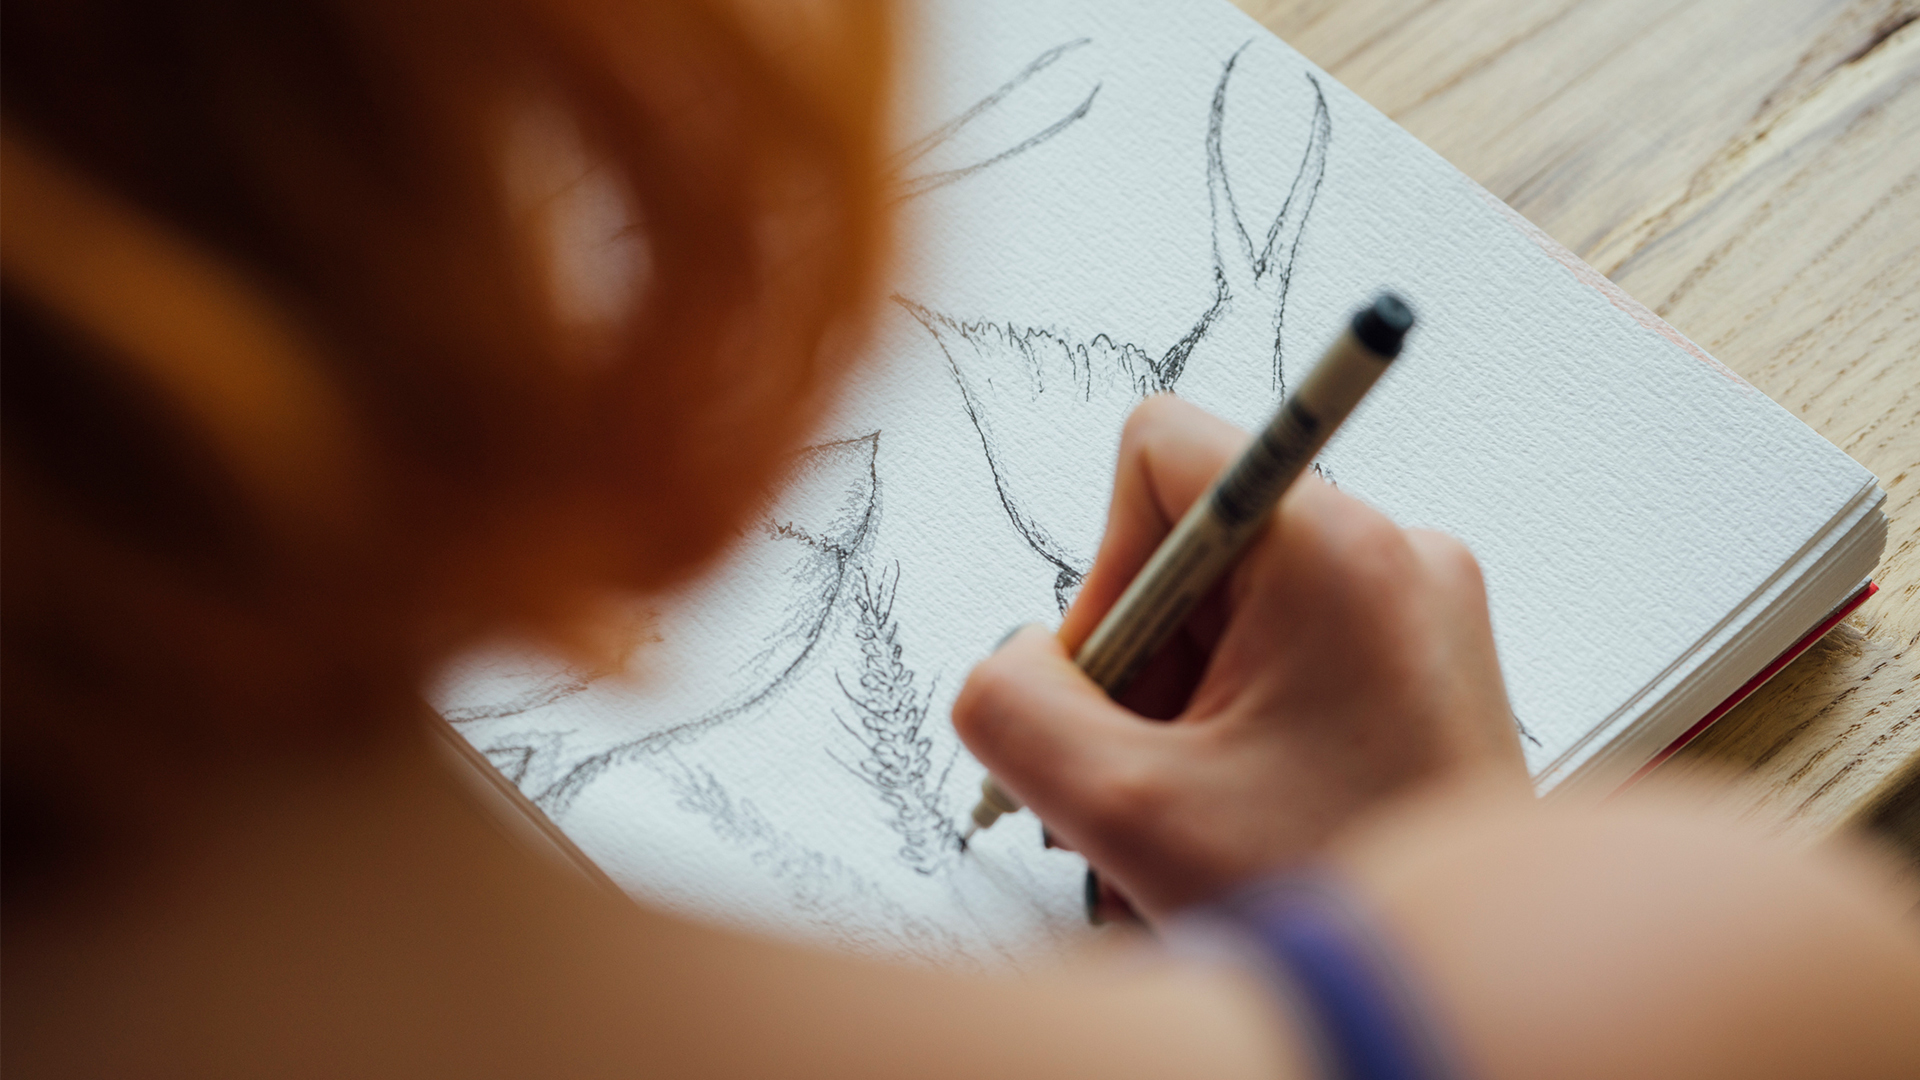 20 top sketching tips to help elevate your skills